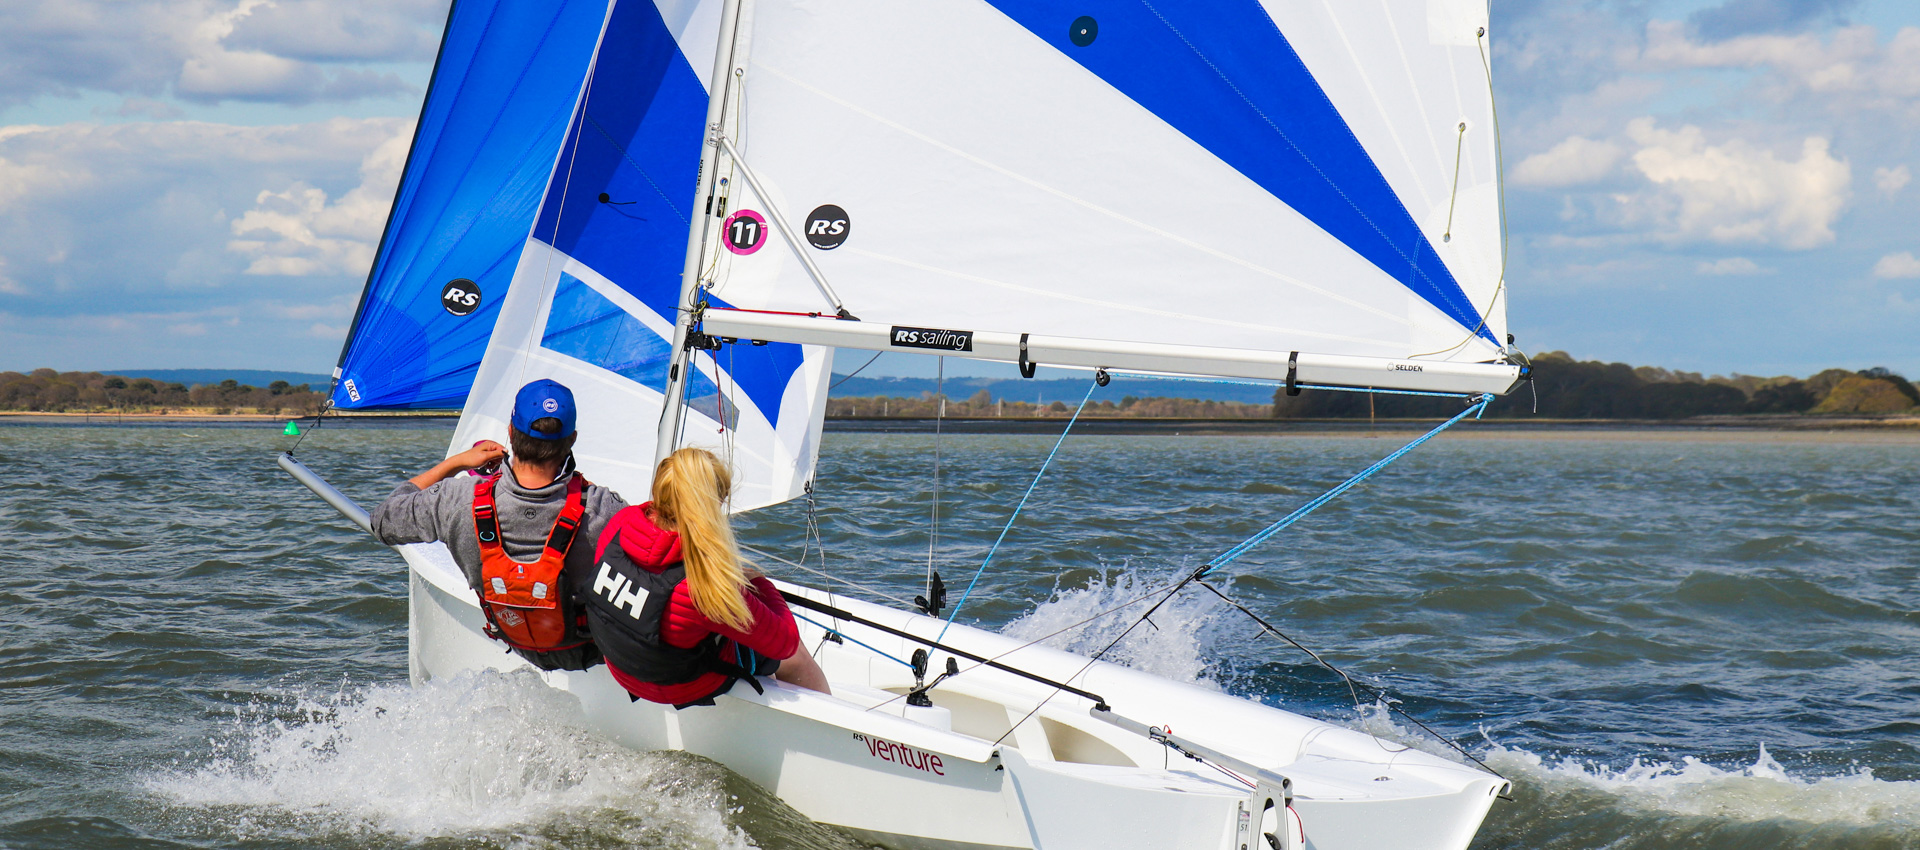 RS Venture Sailing Downwind